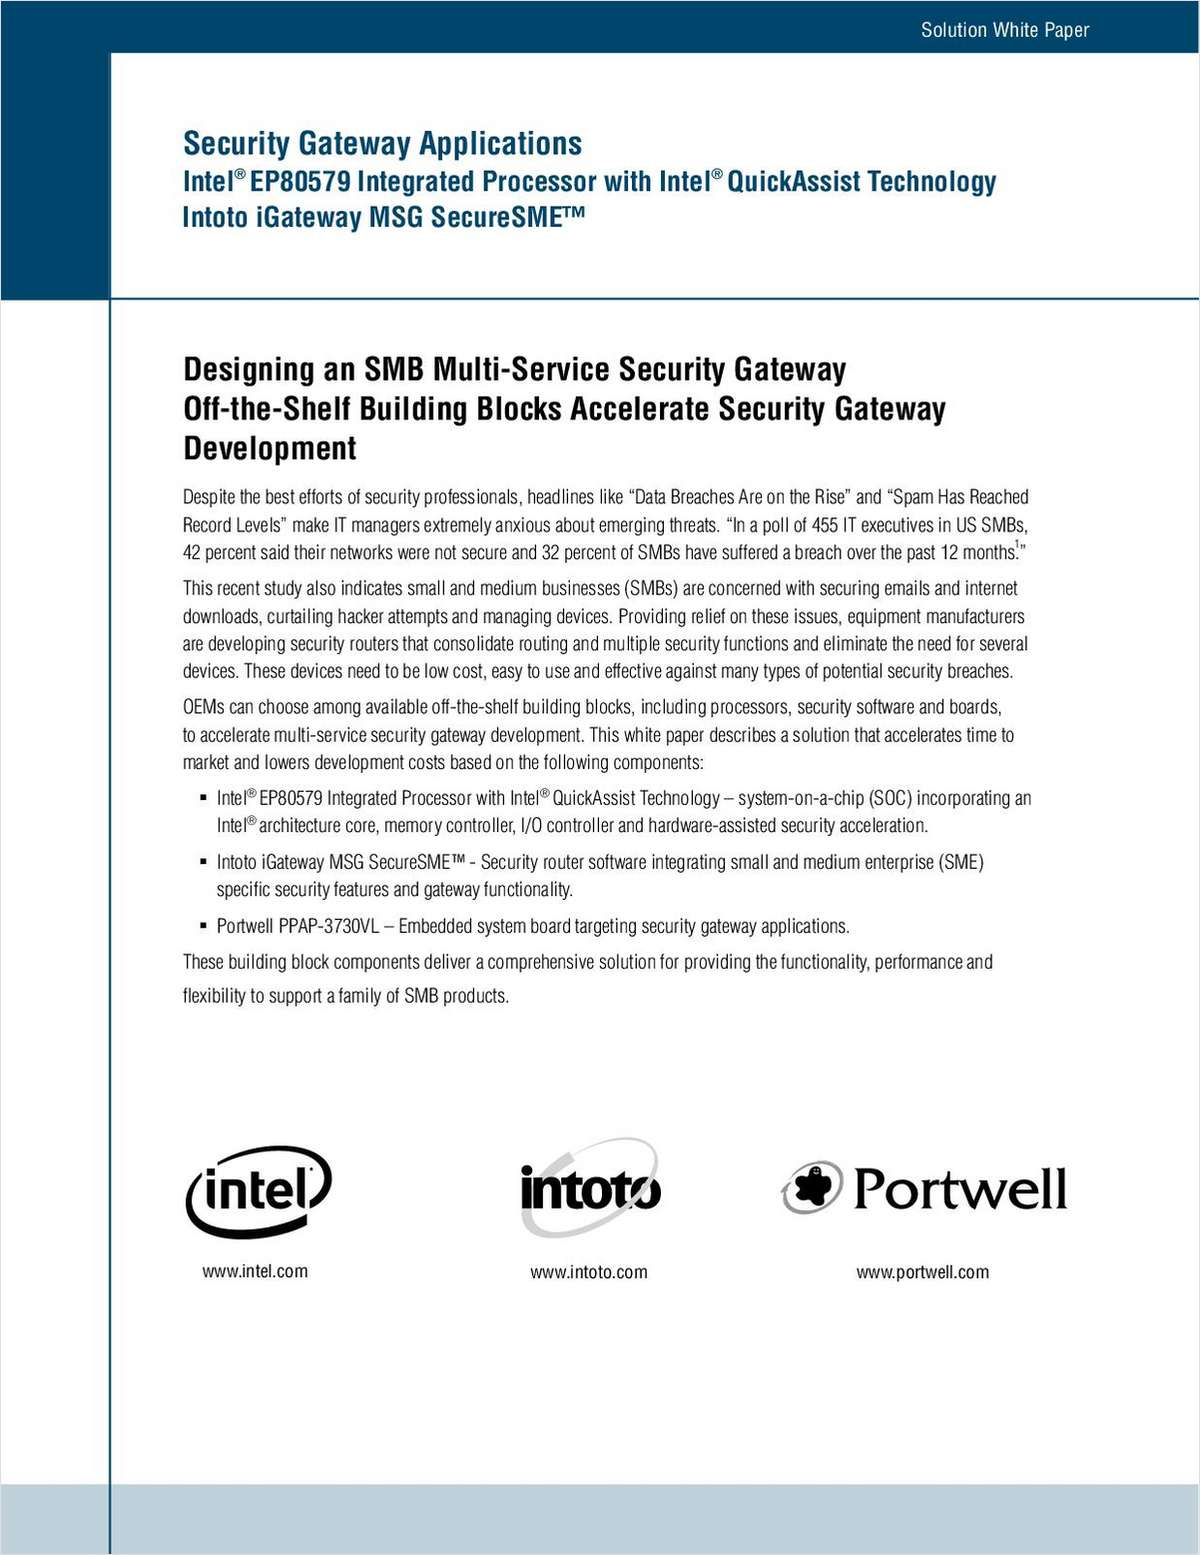 Designing an SMB Multi-Service Security Gateway Off-the-Shelf Building Blocks Accelerate Security Gateway Development